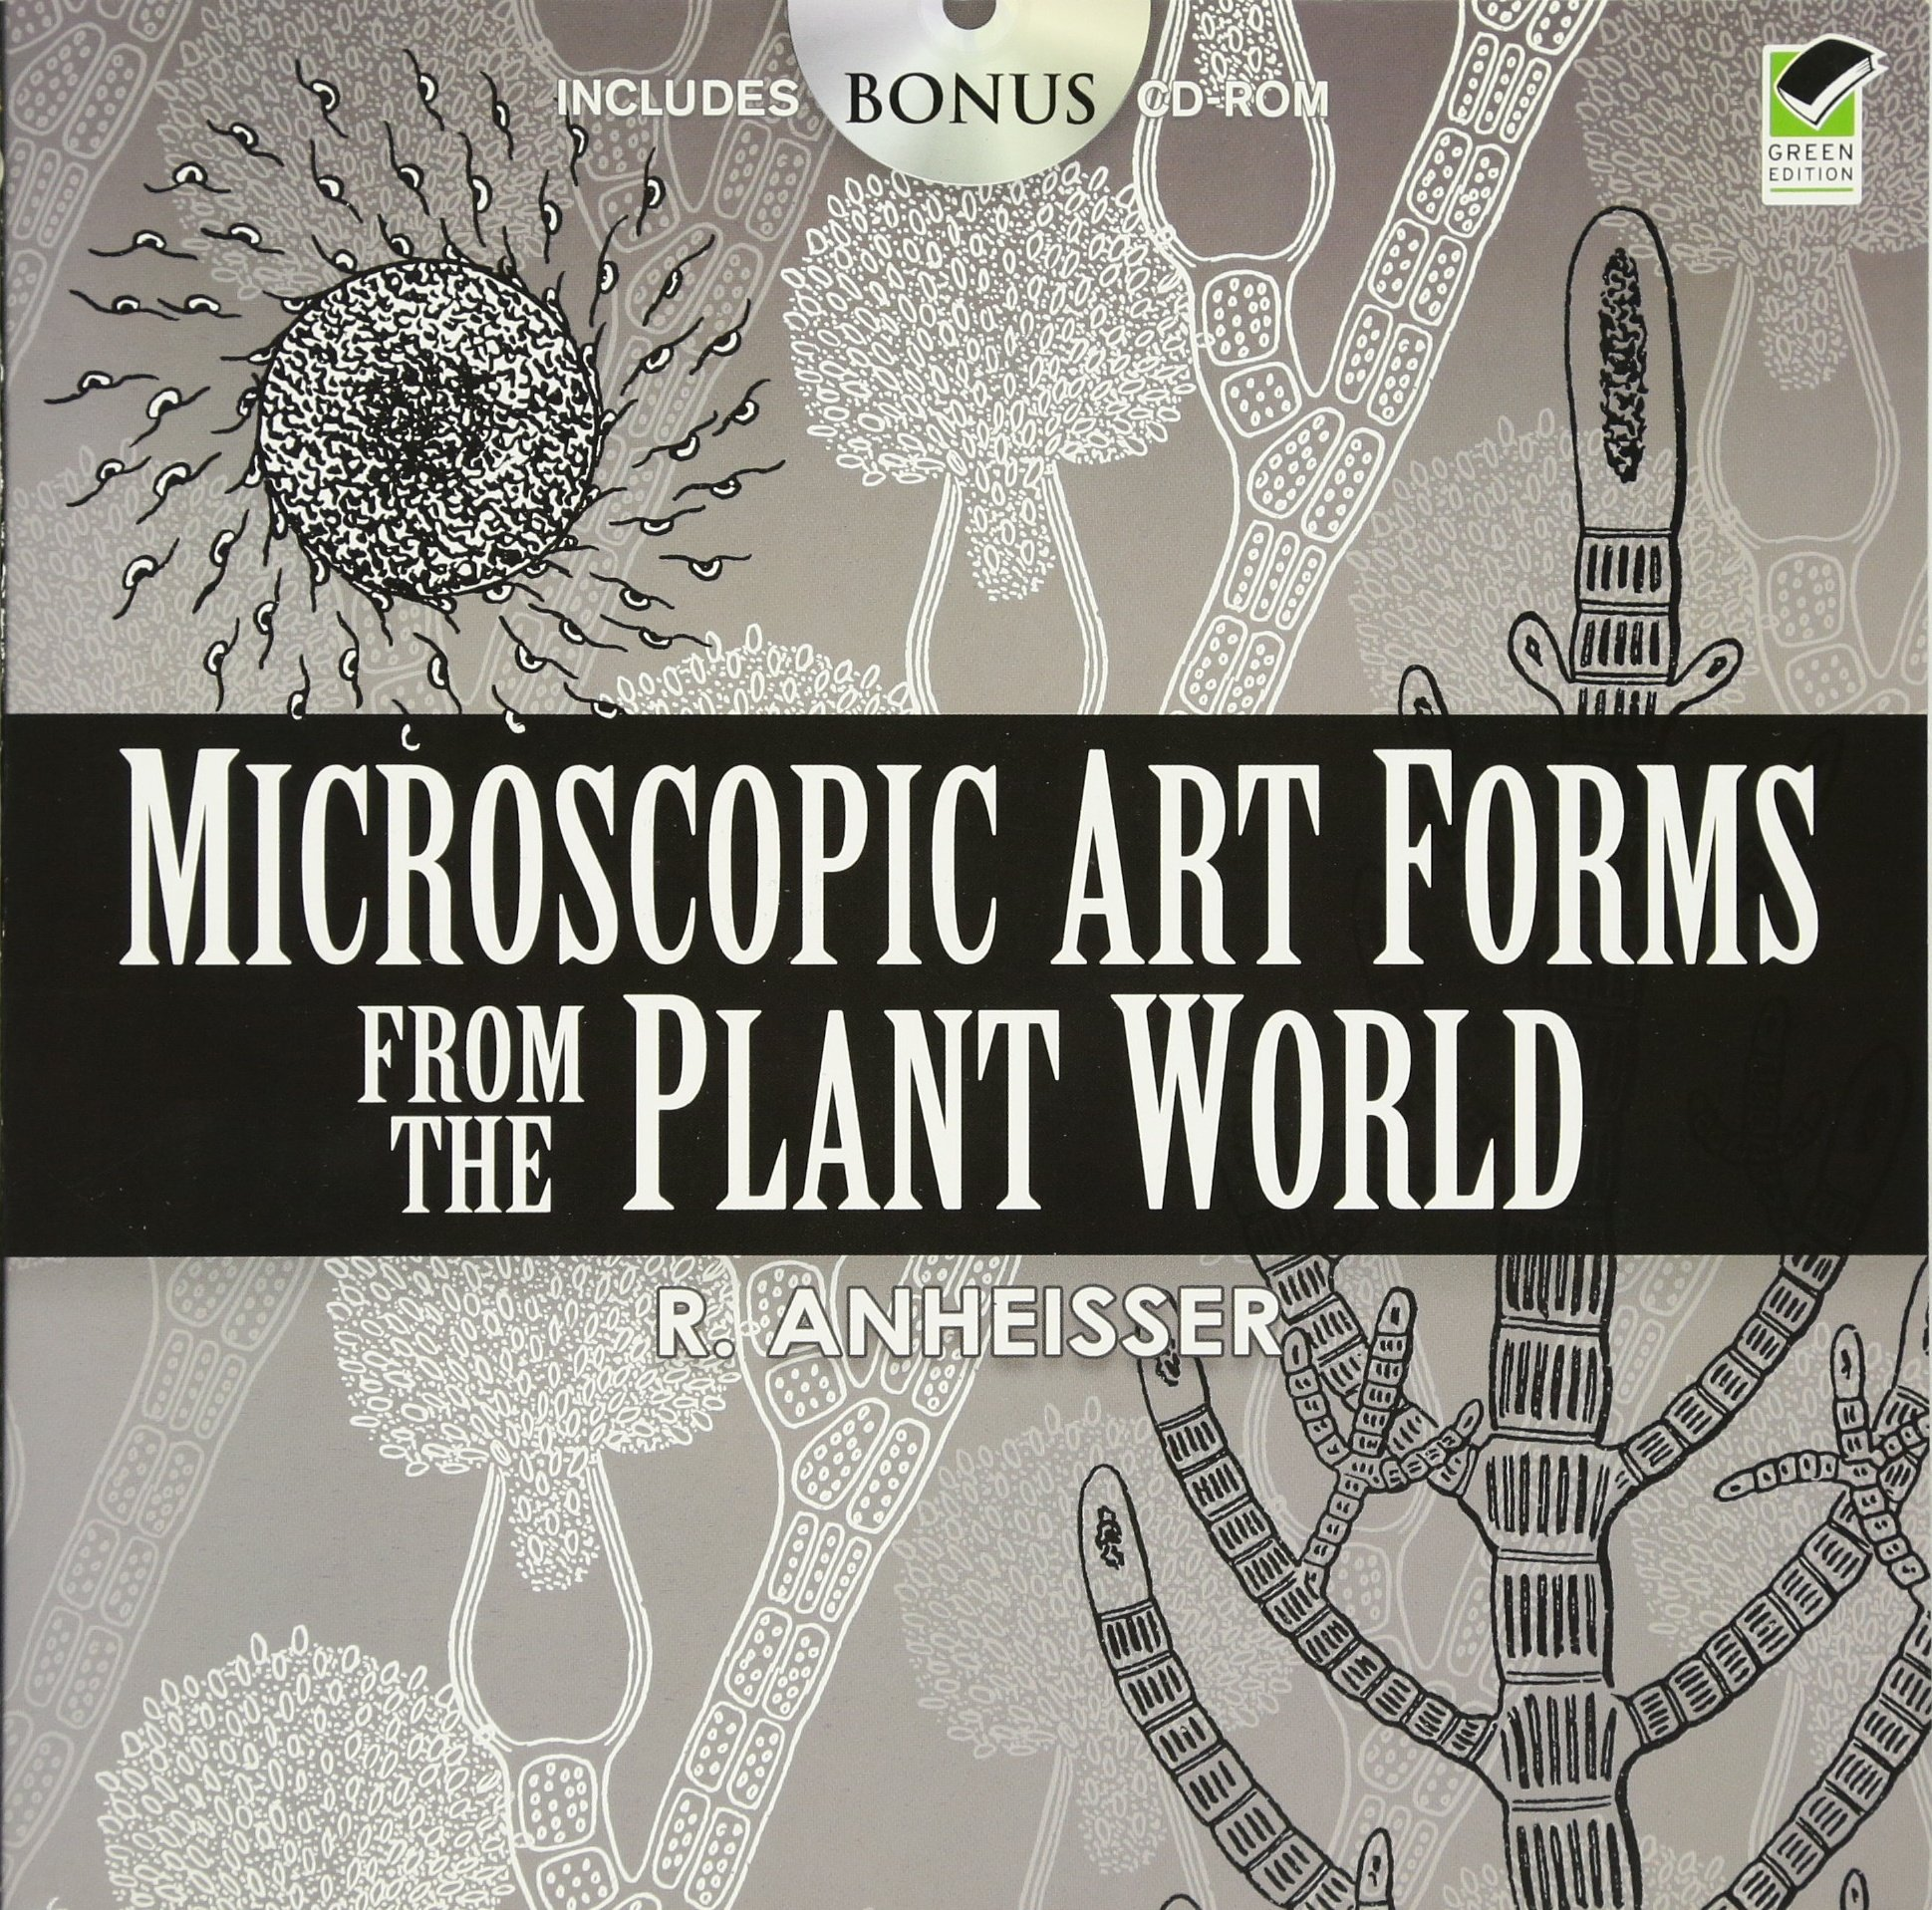 Microscopic Art Forms from the Plant World (Dover Pictorial Archive) Paperback – March 26, 2009 R. Anheisser Dover Publications 0486460134 ART / General